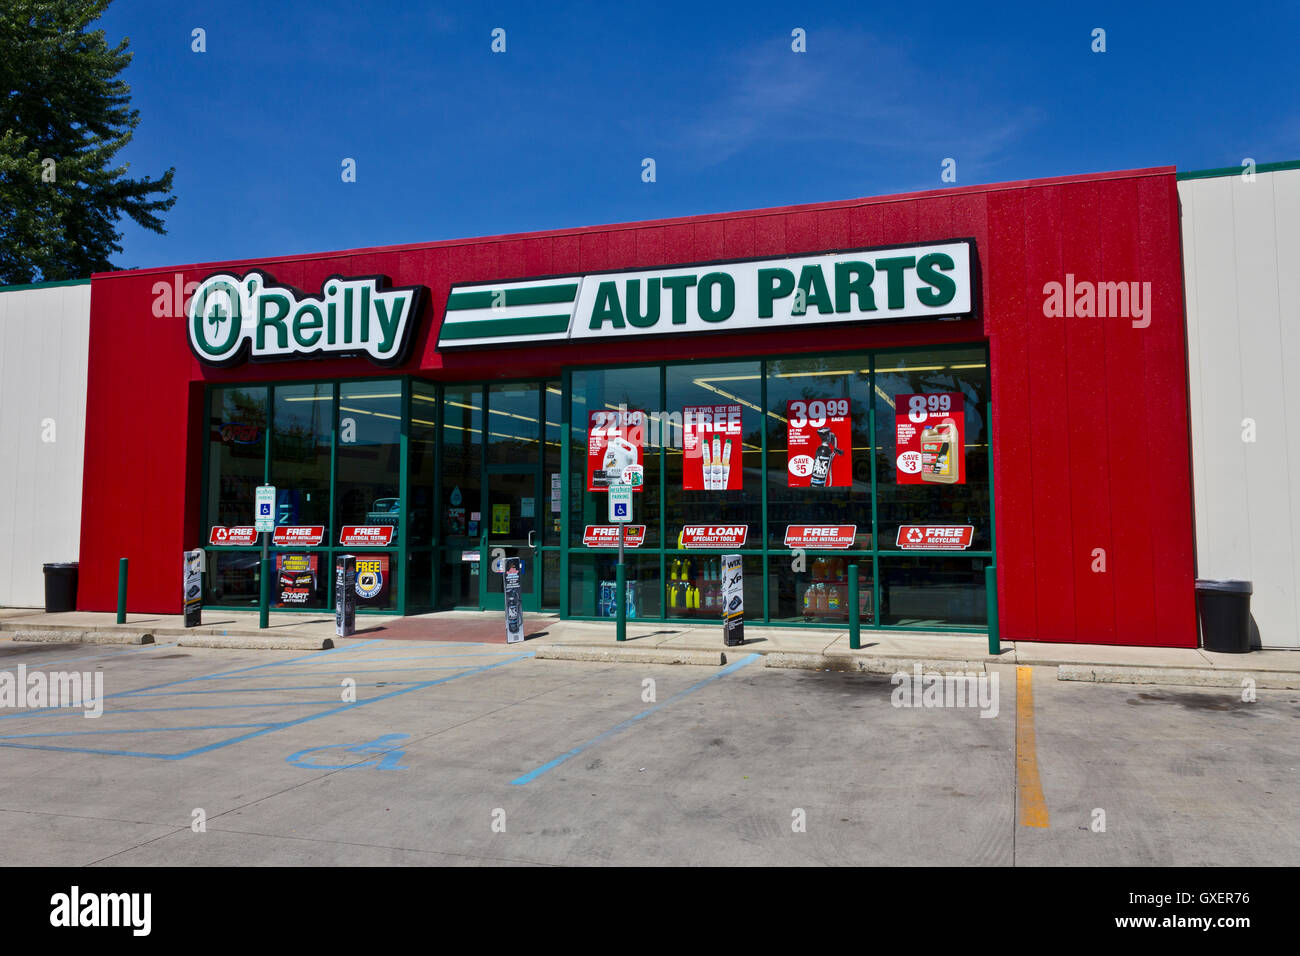 Page 2 Auto Parts High Resolution Stock Photography And Images Alamy